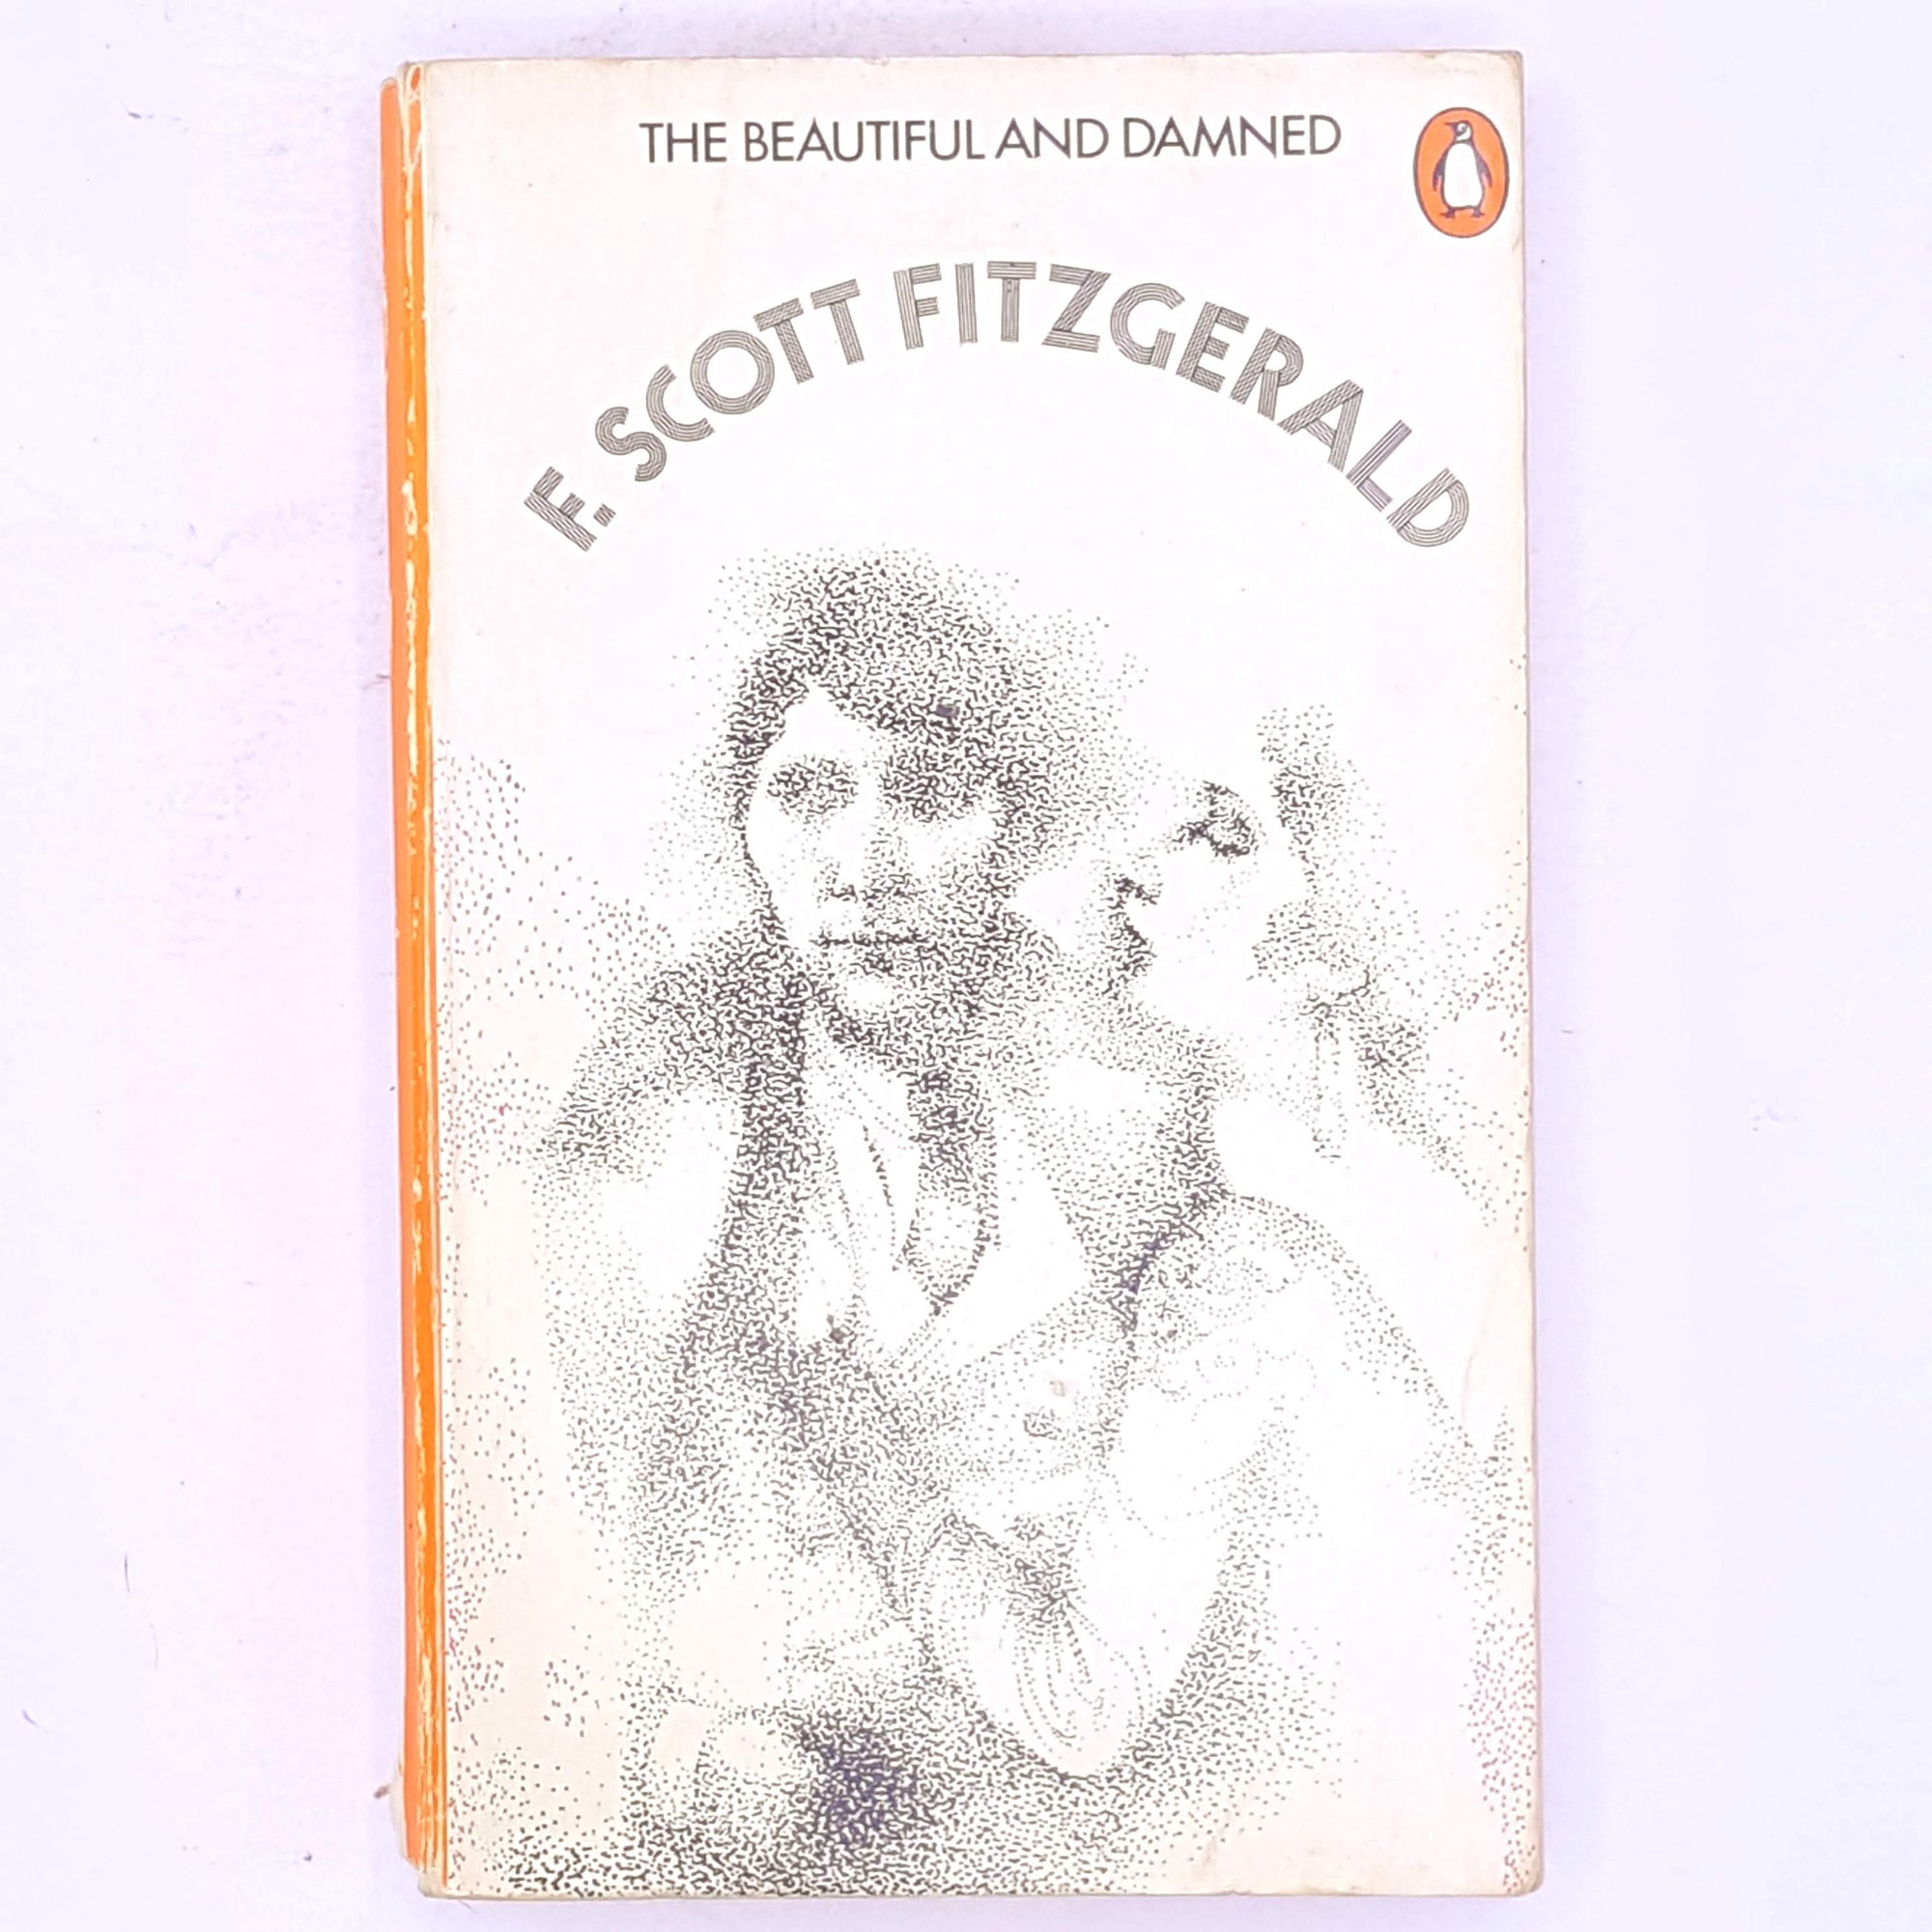 vintage-penguin-books-f.-scott-fitzgerald- patterned-1920-jazz-age-the-beautiful-and-the-damned- classic-country-house-library-antique-thrift-decorative-old-books-